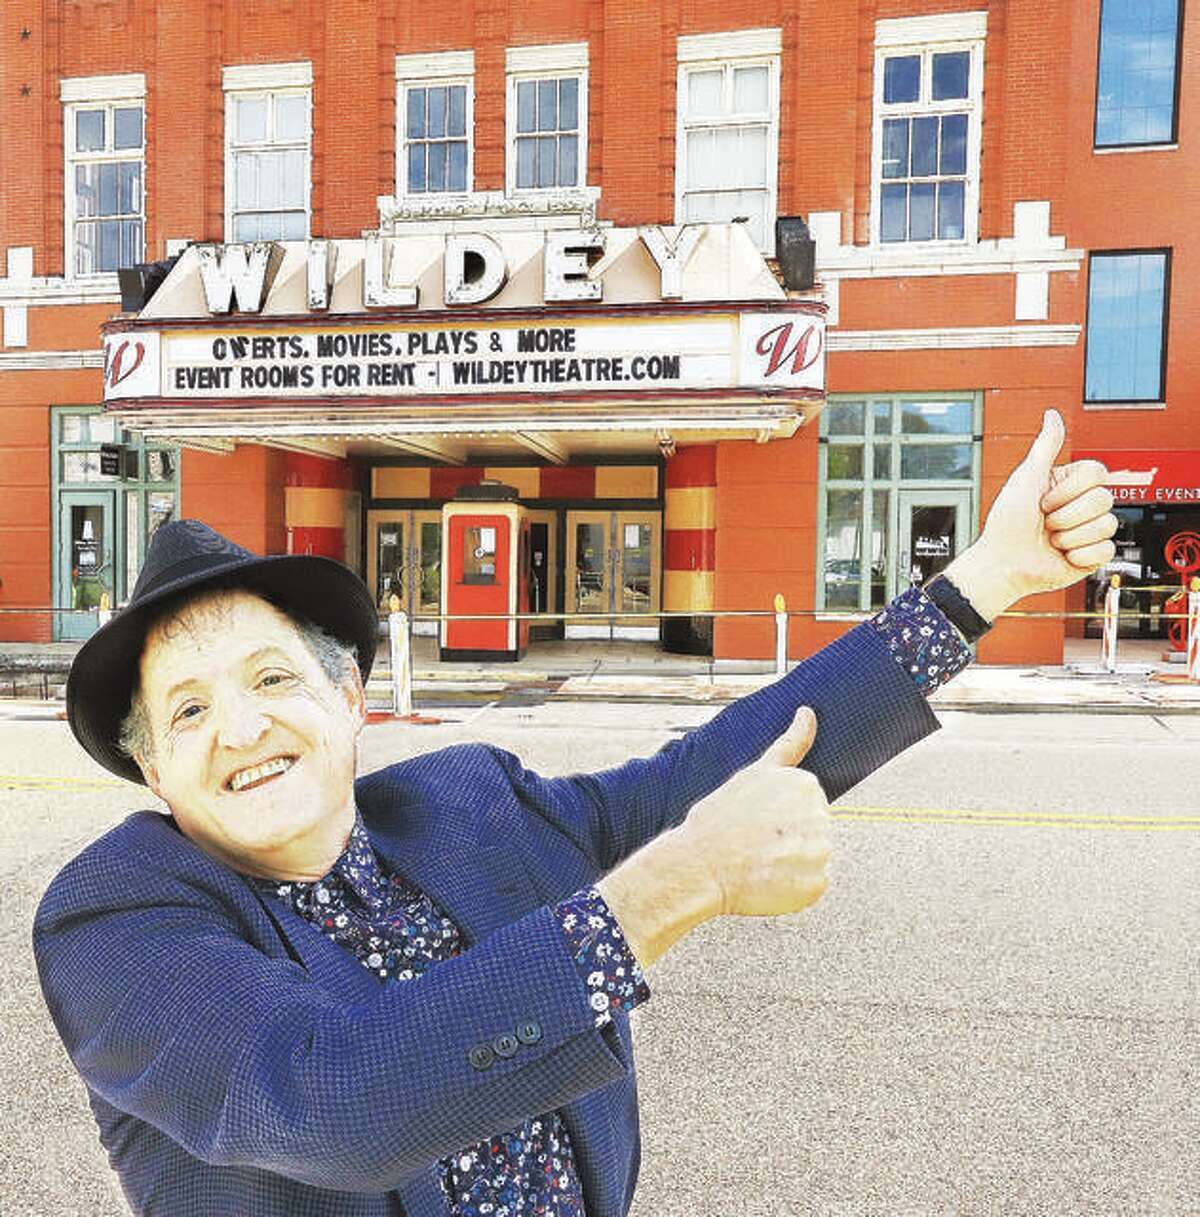 Wildey Theatre manager Al Canal gives the Edwardsville entertainment destination two thumbs up.